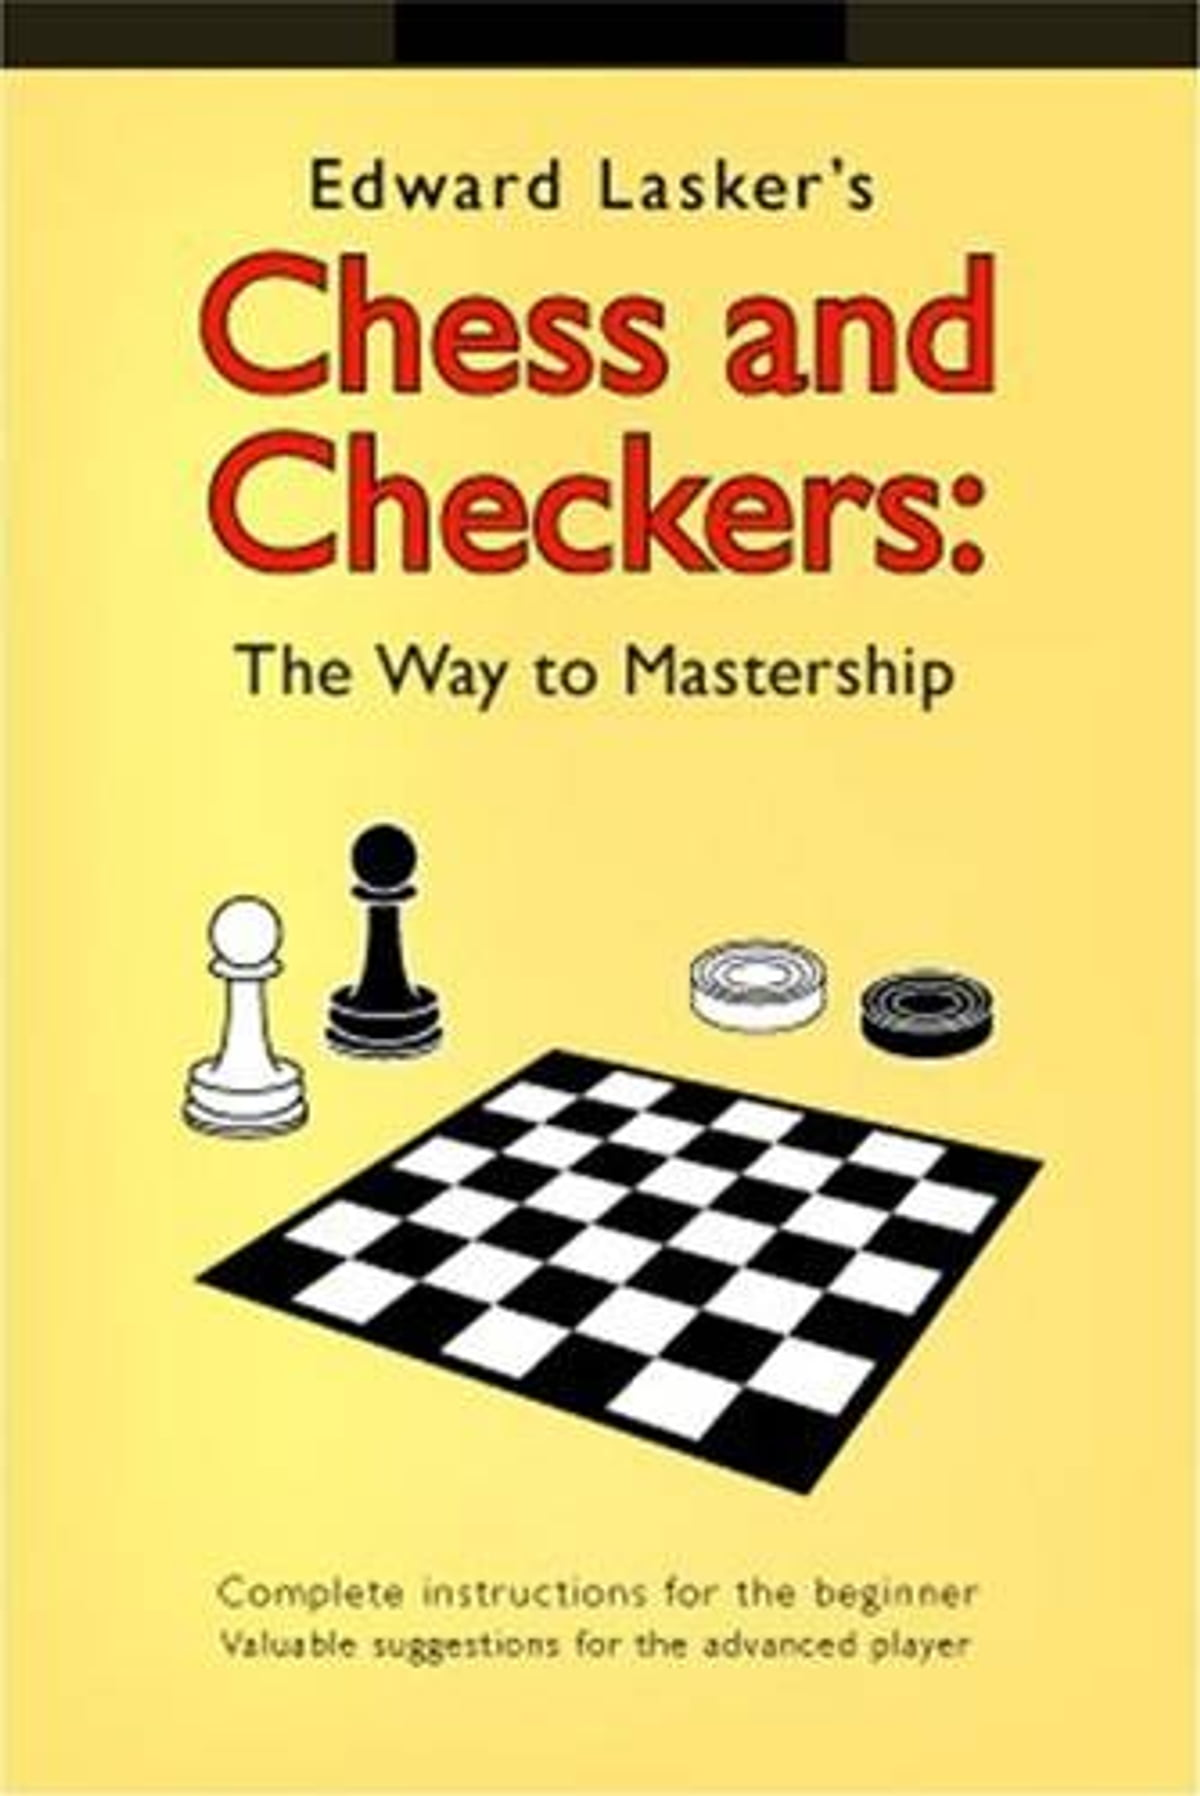 A World Champion's Guide To Chess: Step-By-Step Instructions For Winning  Chess The Polgar Way eBook by Edward Lasker   Rakuten Kobo